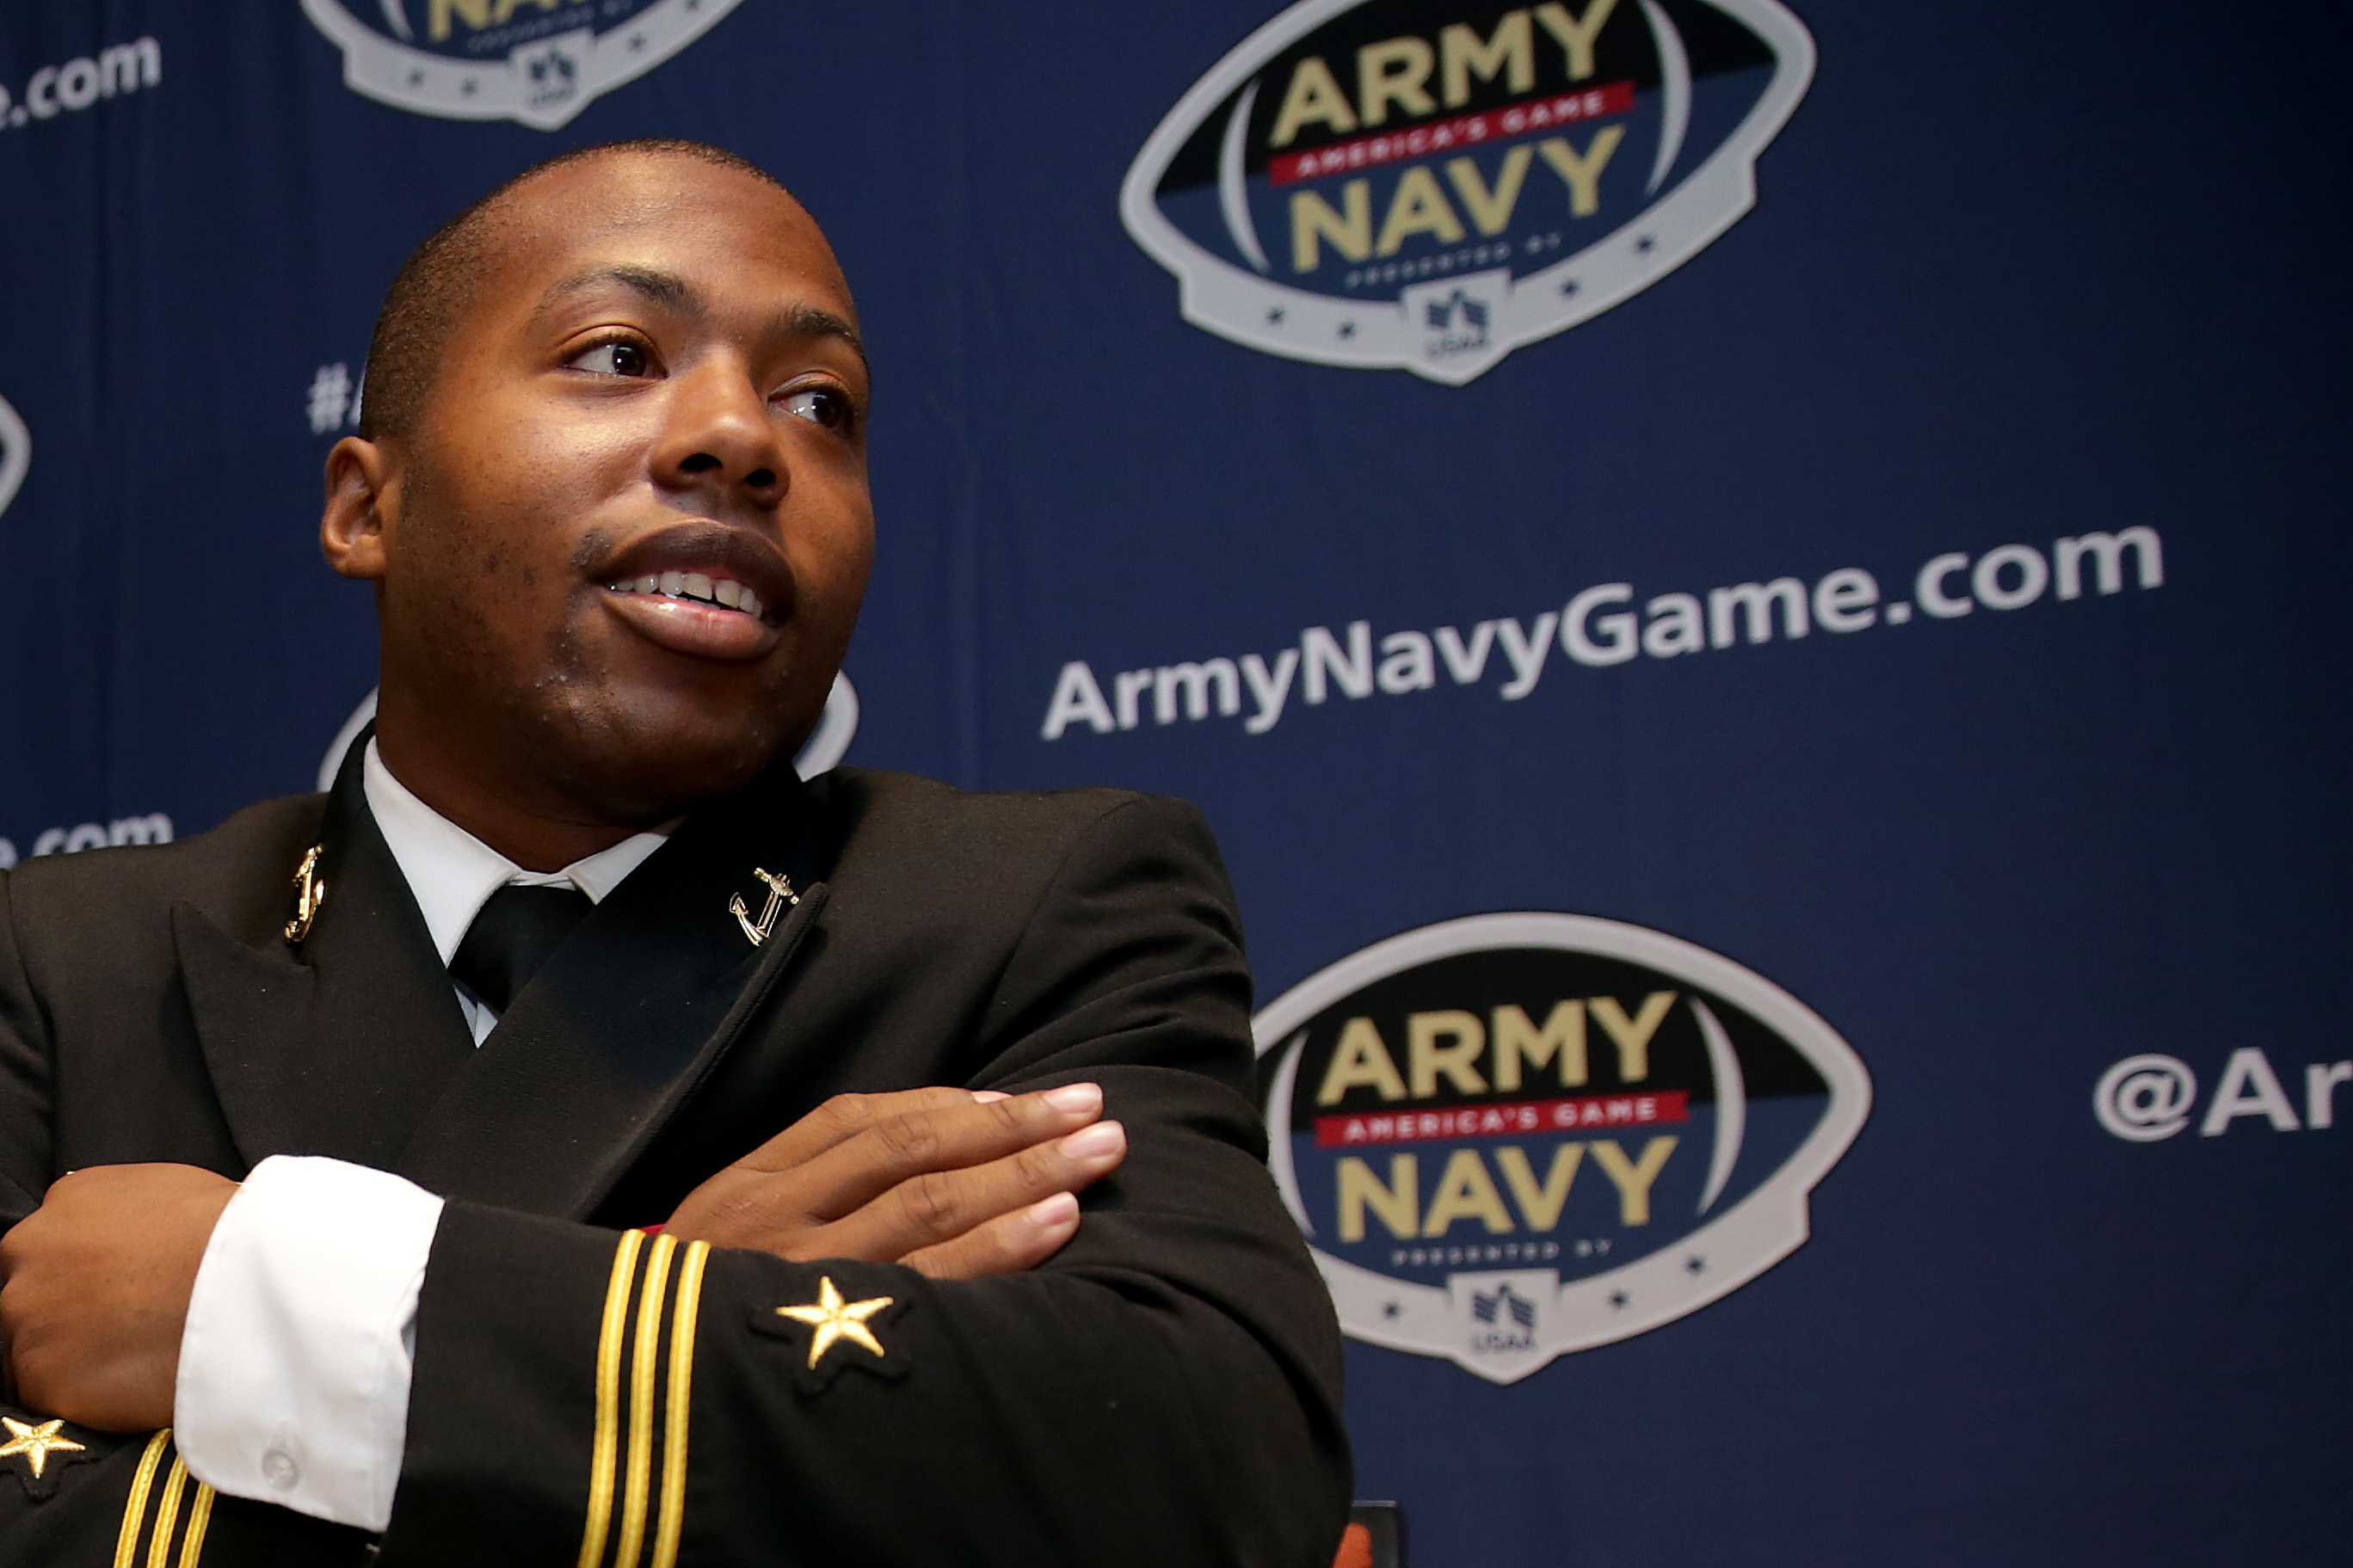 Navy's Darryl Bonner. talking during the Army-Navy press event at Lincoln Financial Field on Nov. 29.